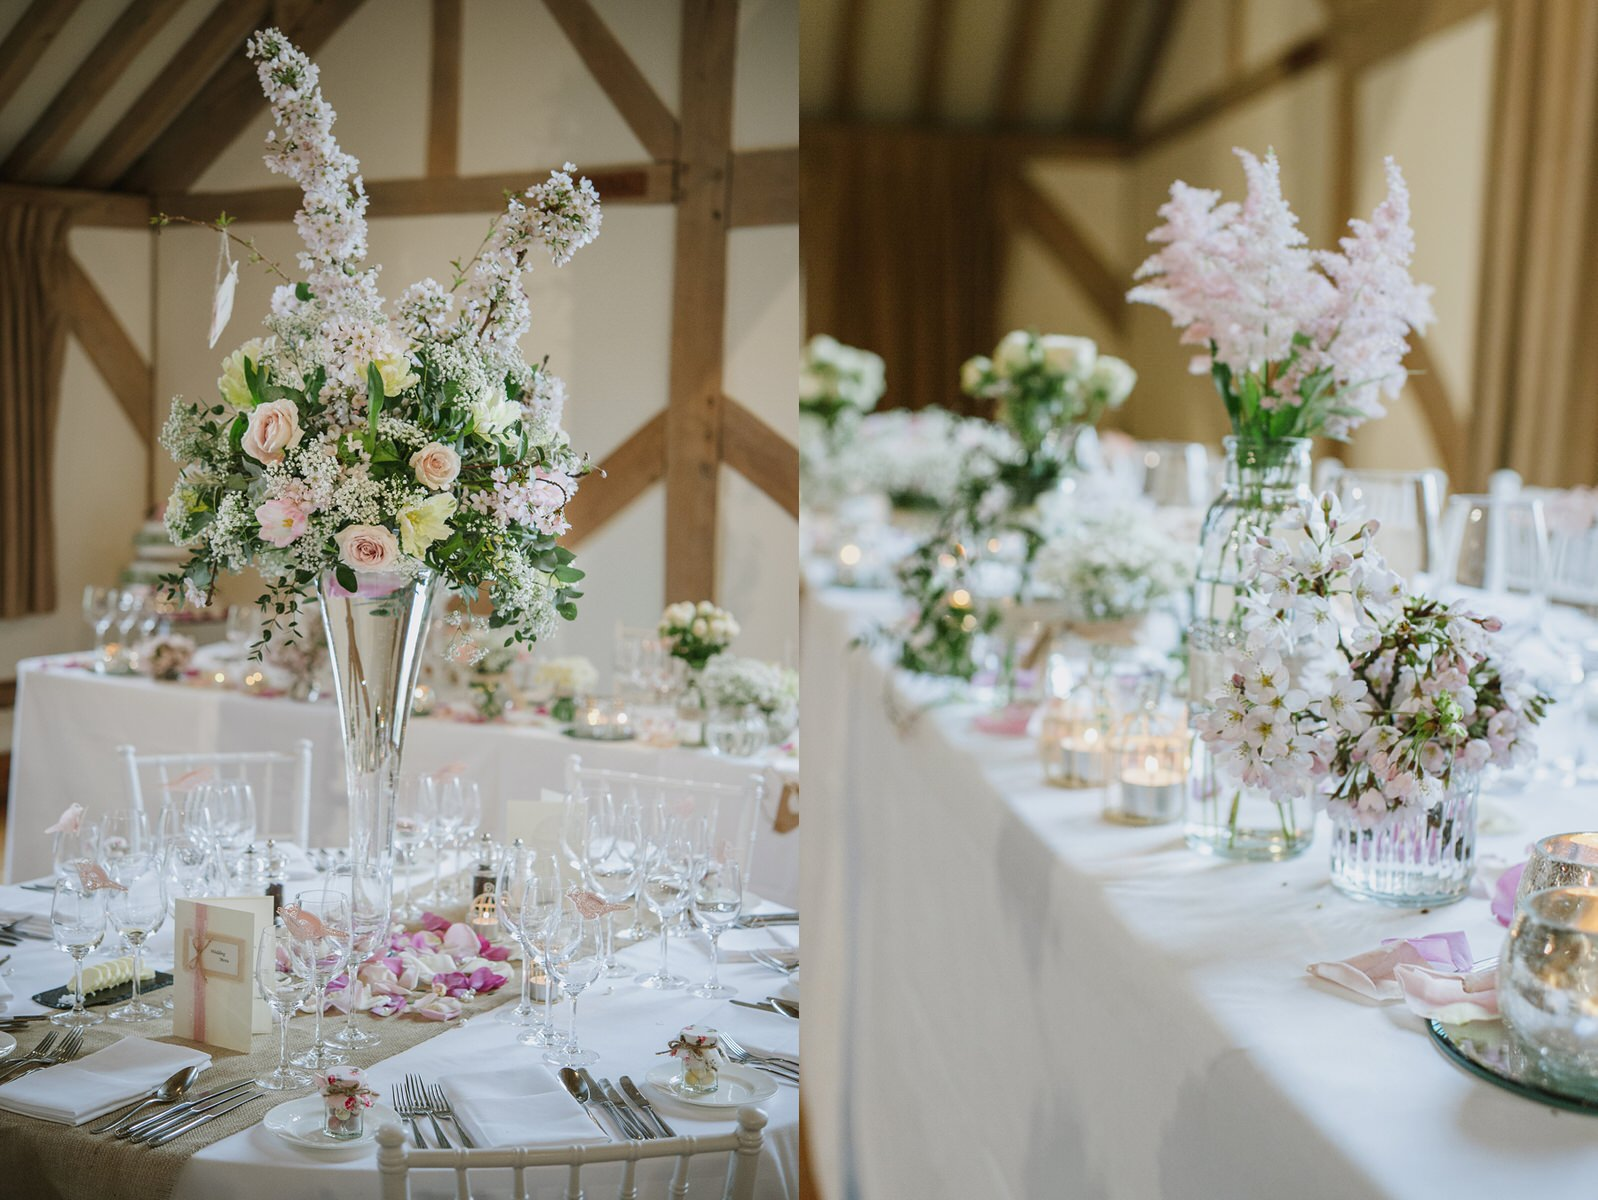 Cain Manor wedding tall table centres with pink cherry blossom